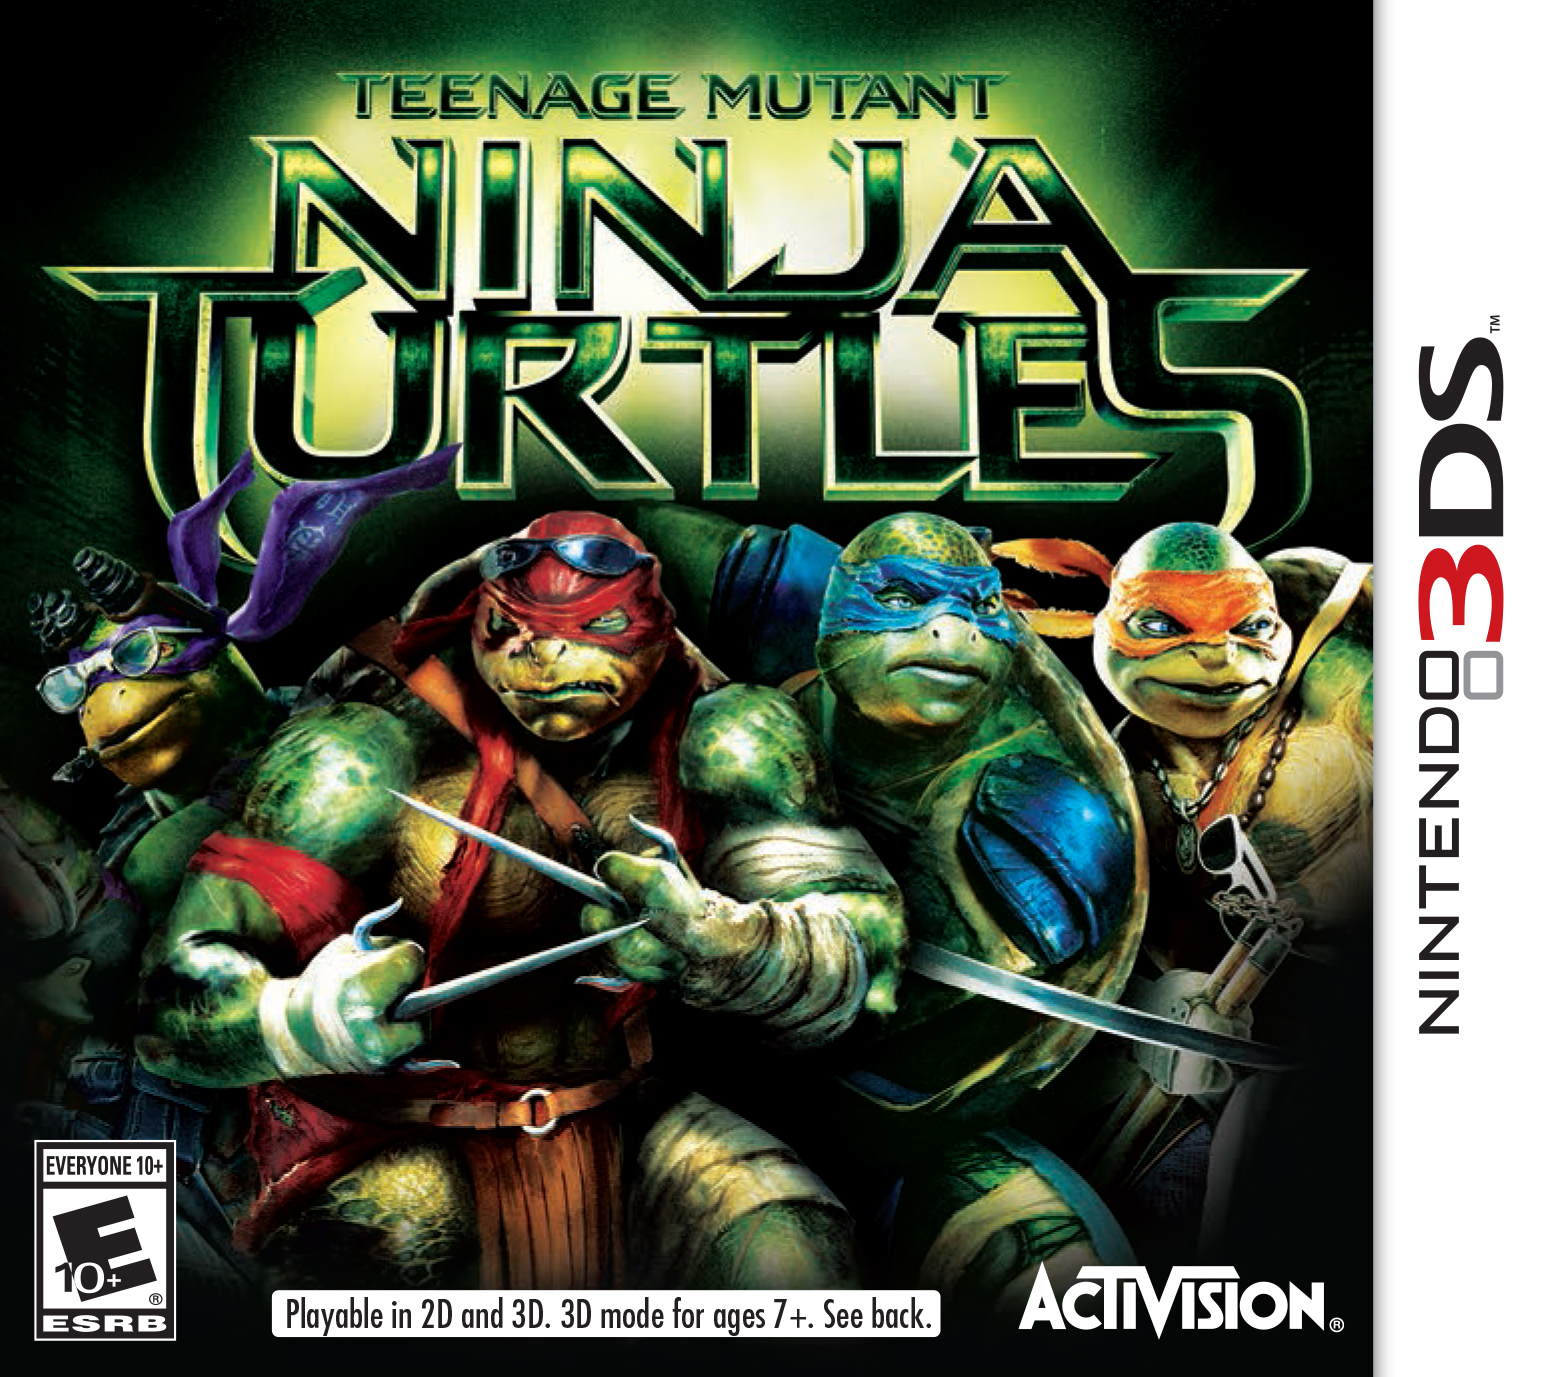 New Teenage Mutant Ninja Turtles Game Coming To 3ds Nintendo Everything